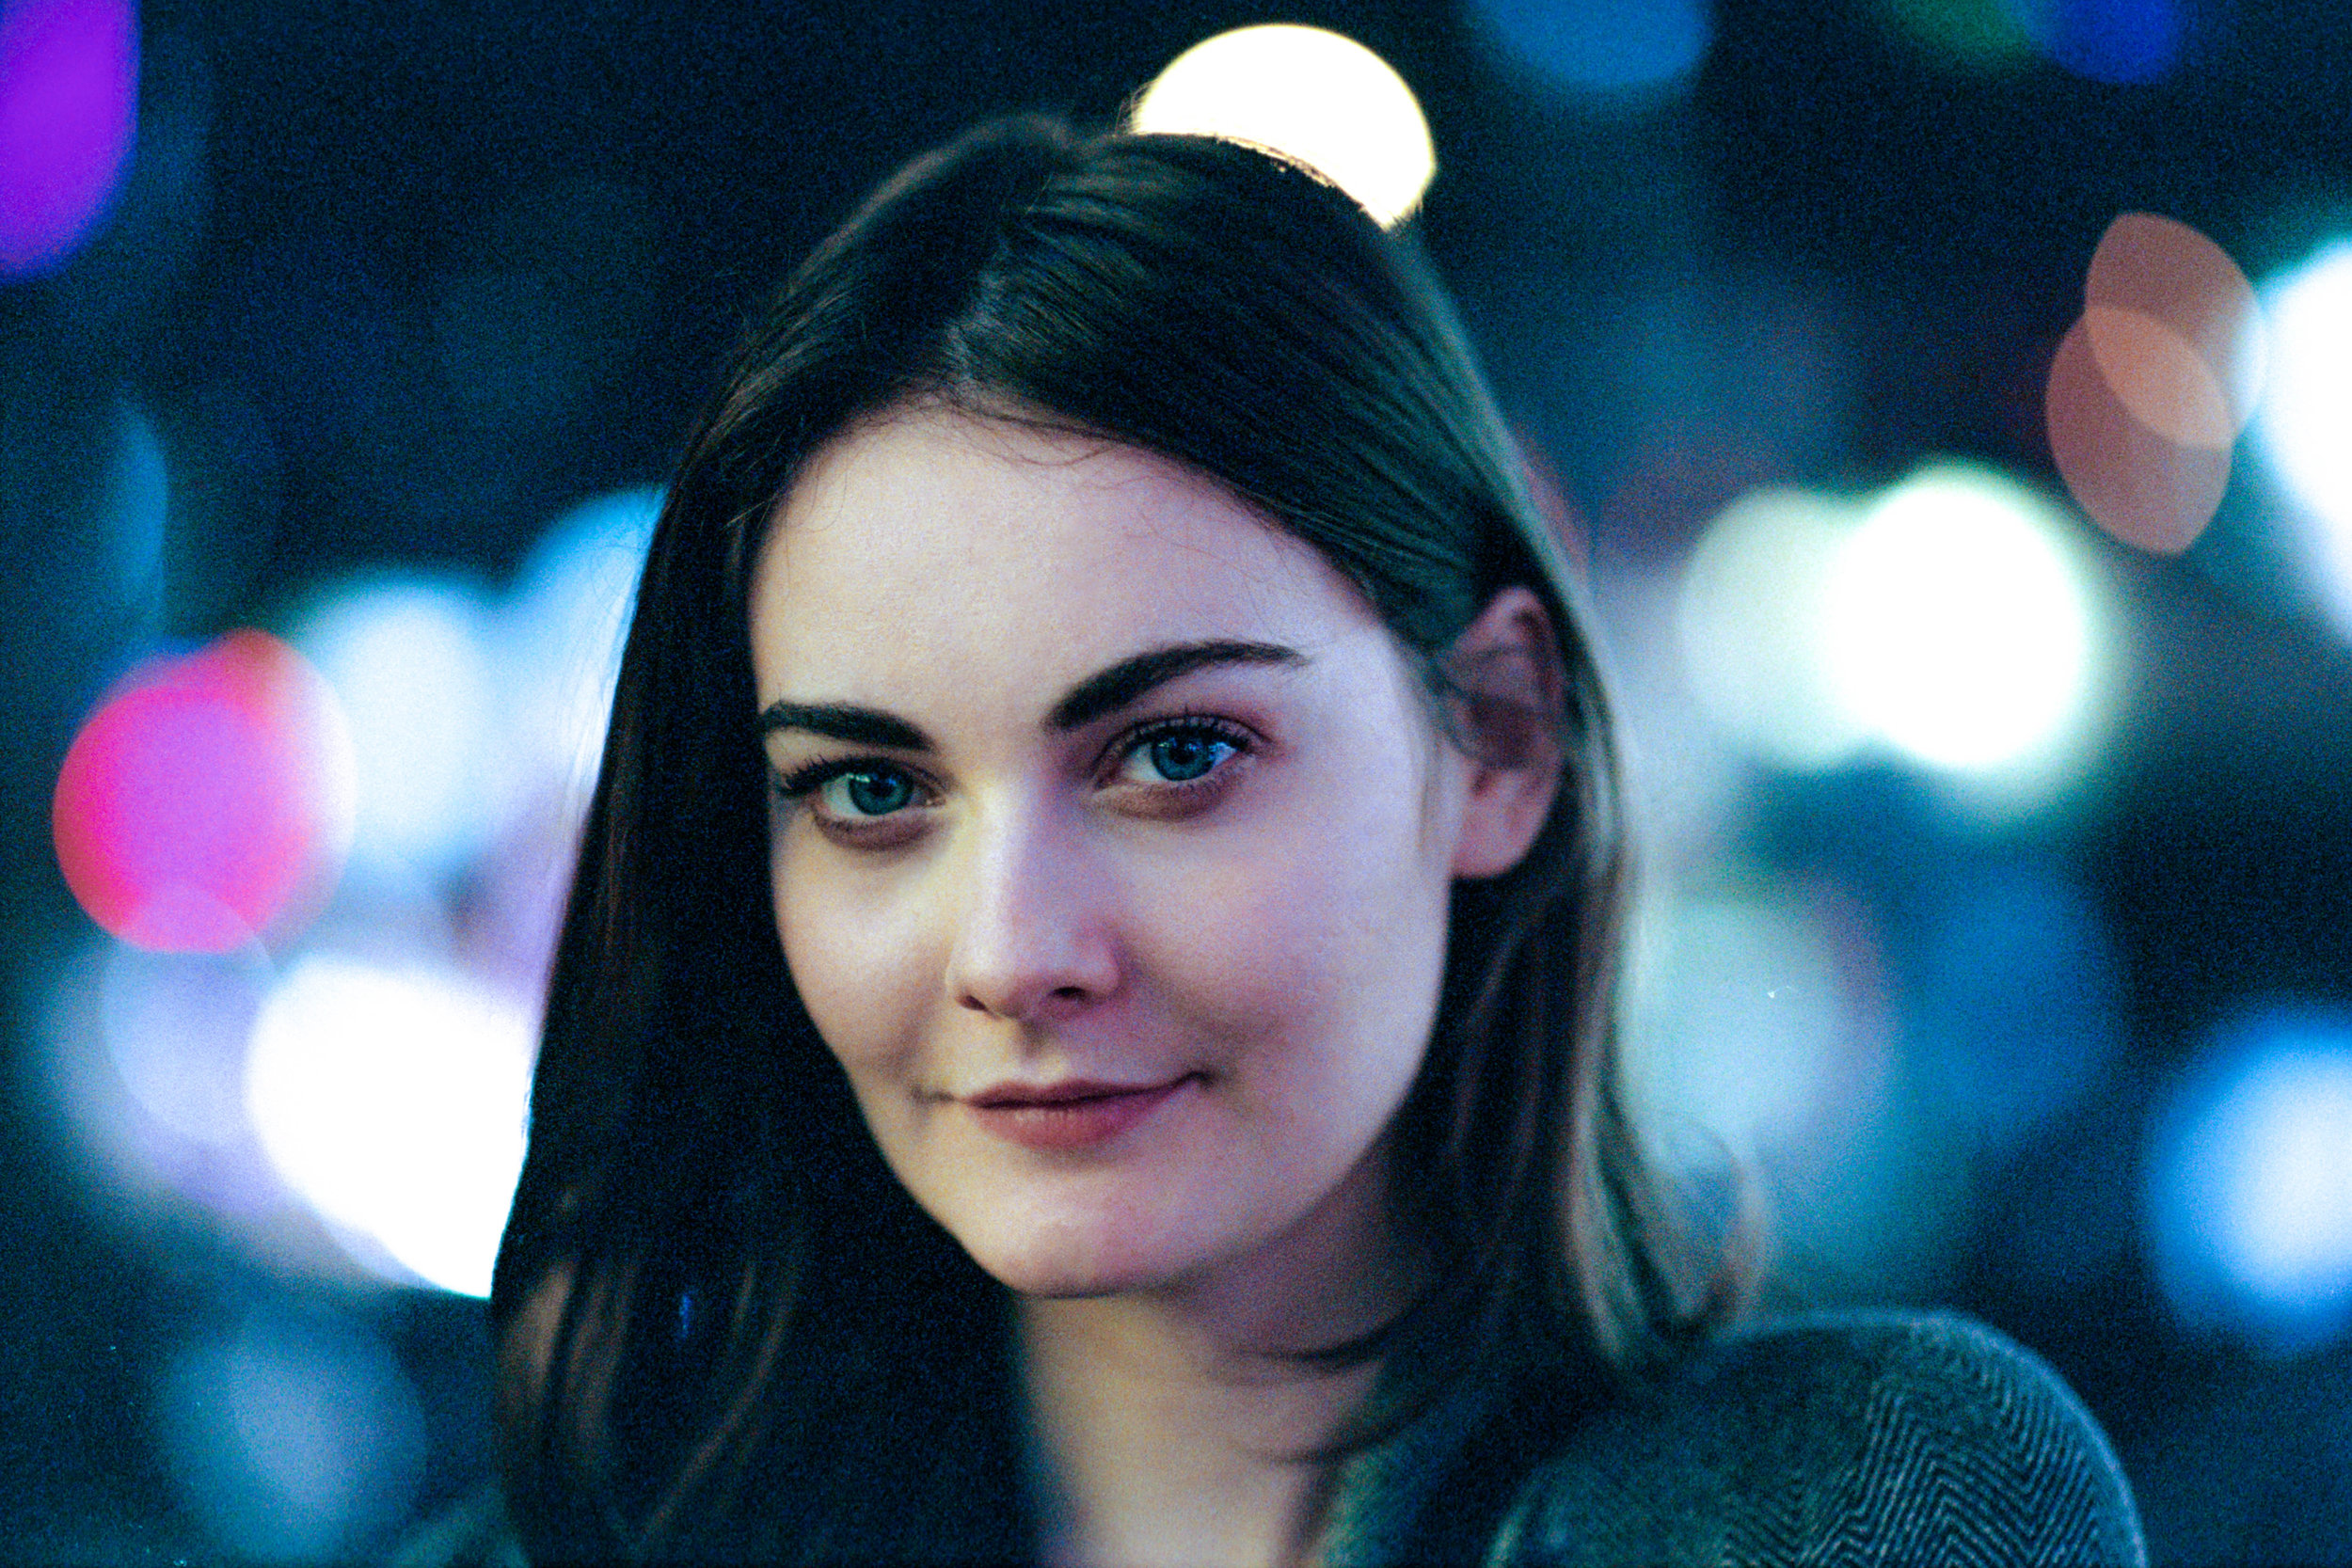 Leica MP-6 + Leica 75mm f/1.25 Noctilux-M ASPH + Fuji Superia Venus 800 - This might possibly be the best example of how this lens renders on film. The eyes and eye lashes are perceptibly sharp, while the surrounding facial features gradually blends out-of-focus.